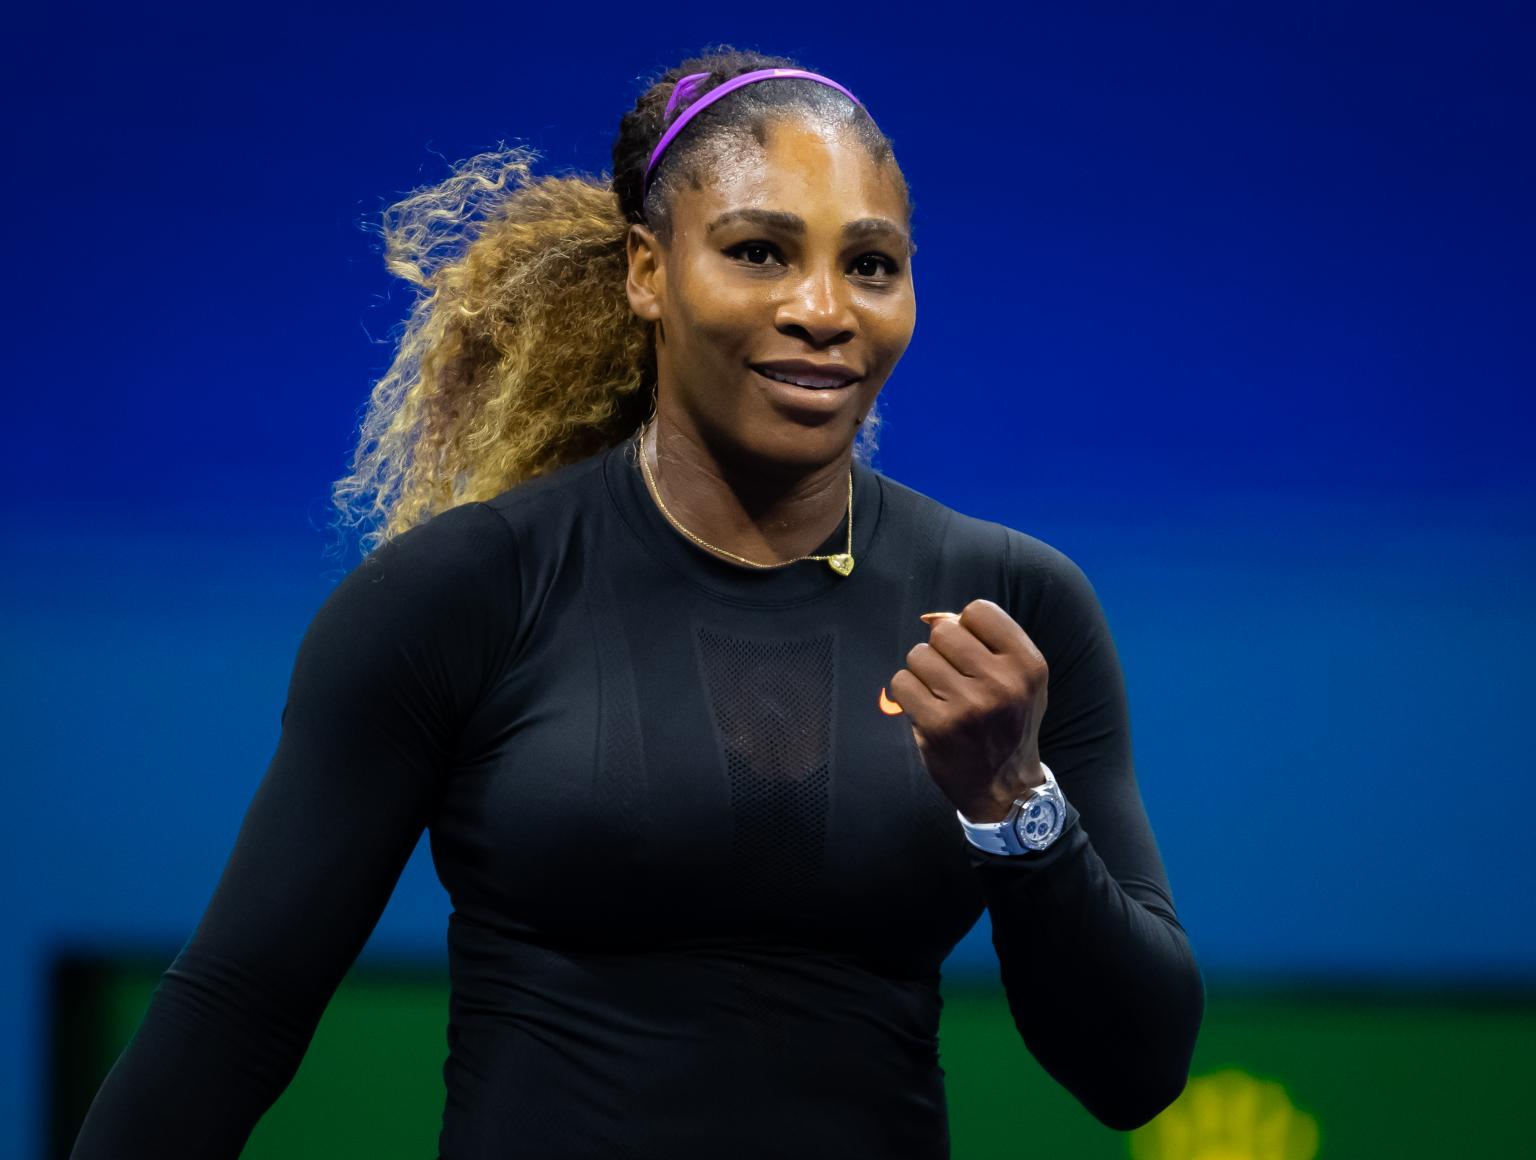 Will Serena Williams win her 24th Grand Slam and Equal Margaret Court? 2